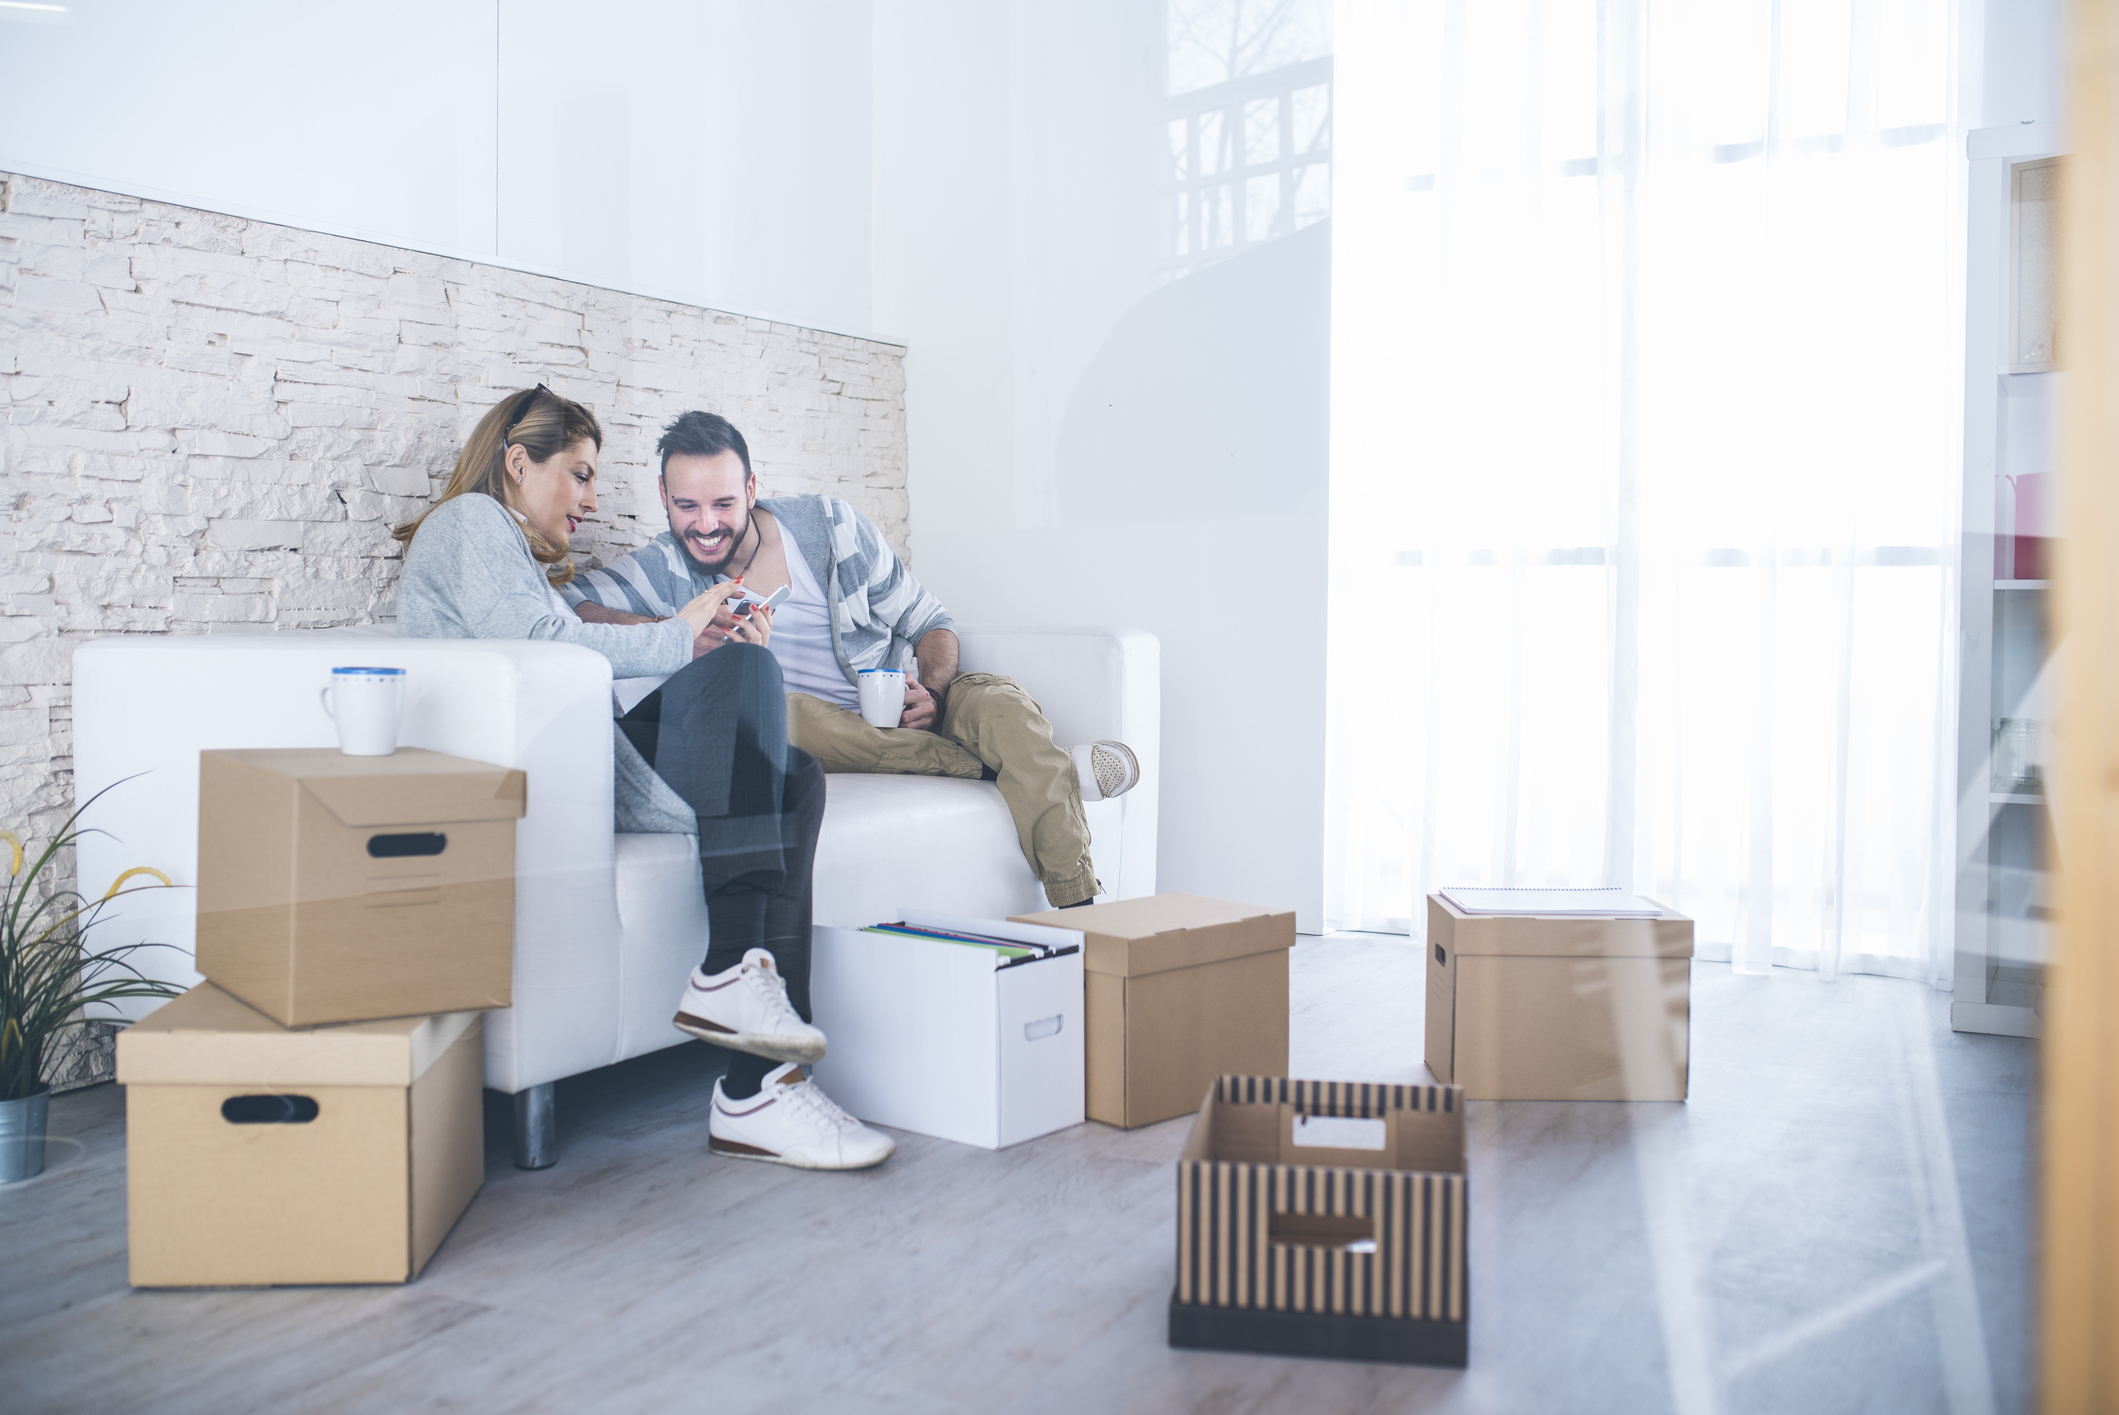 Man and woman looking at smartphone while packing boxes